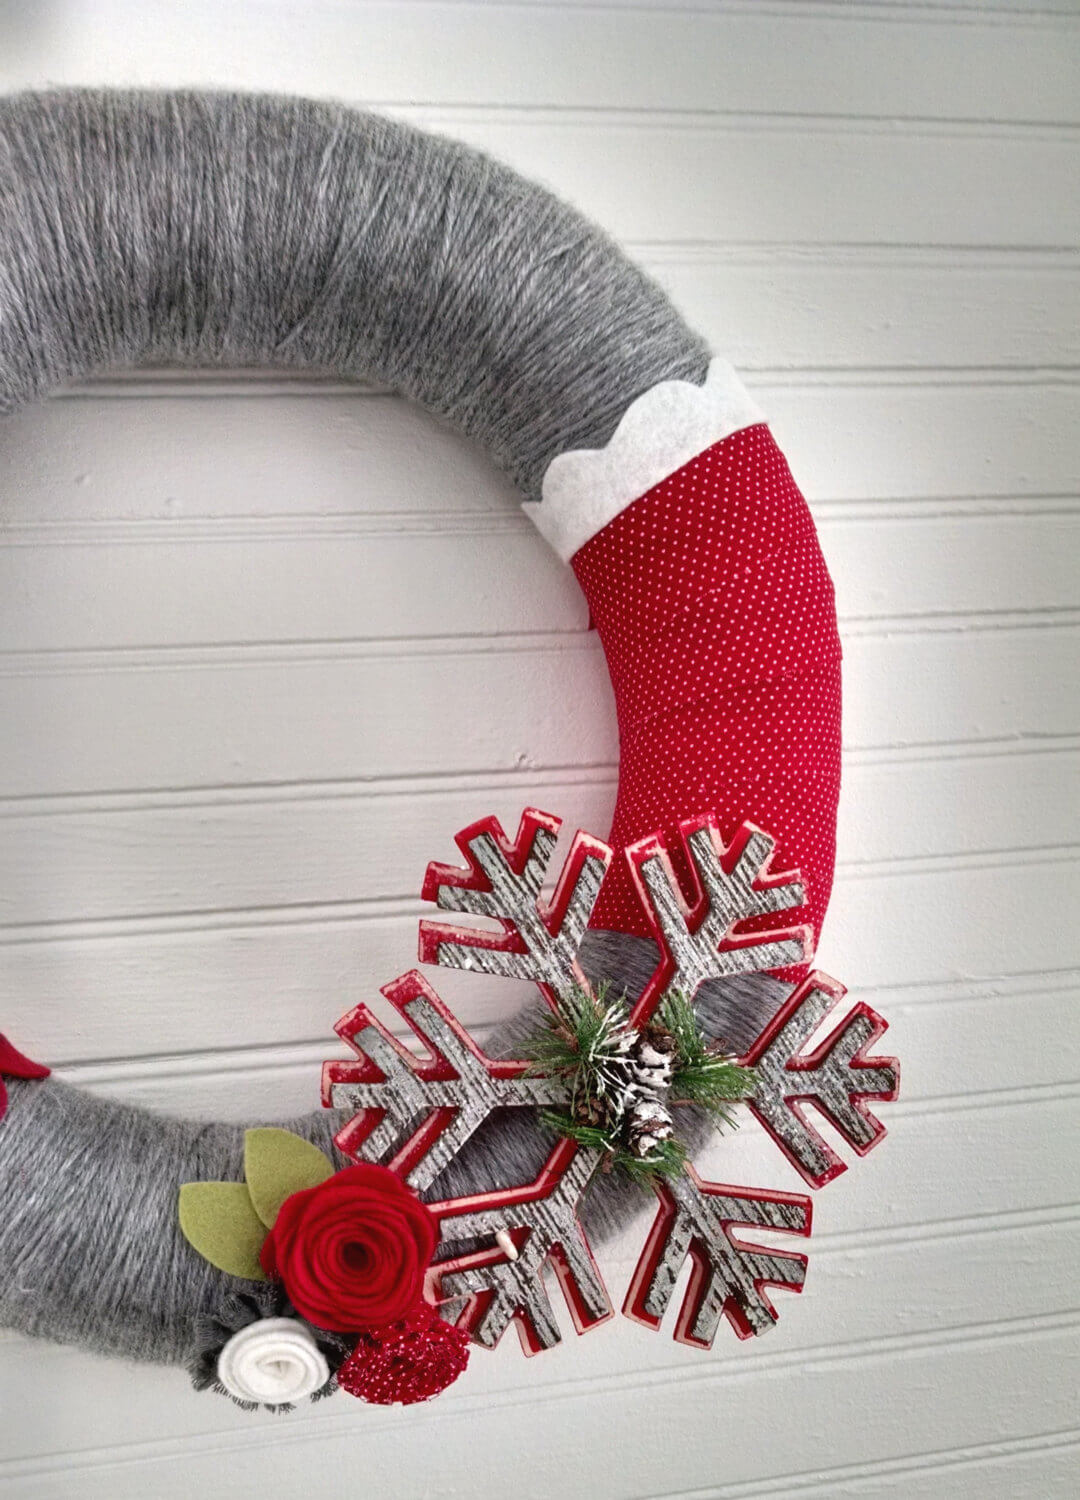 Christmas wreath in white, red and gray with a snowflake